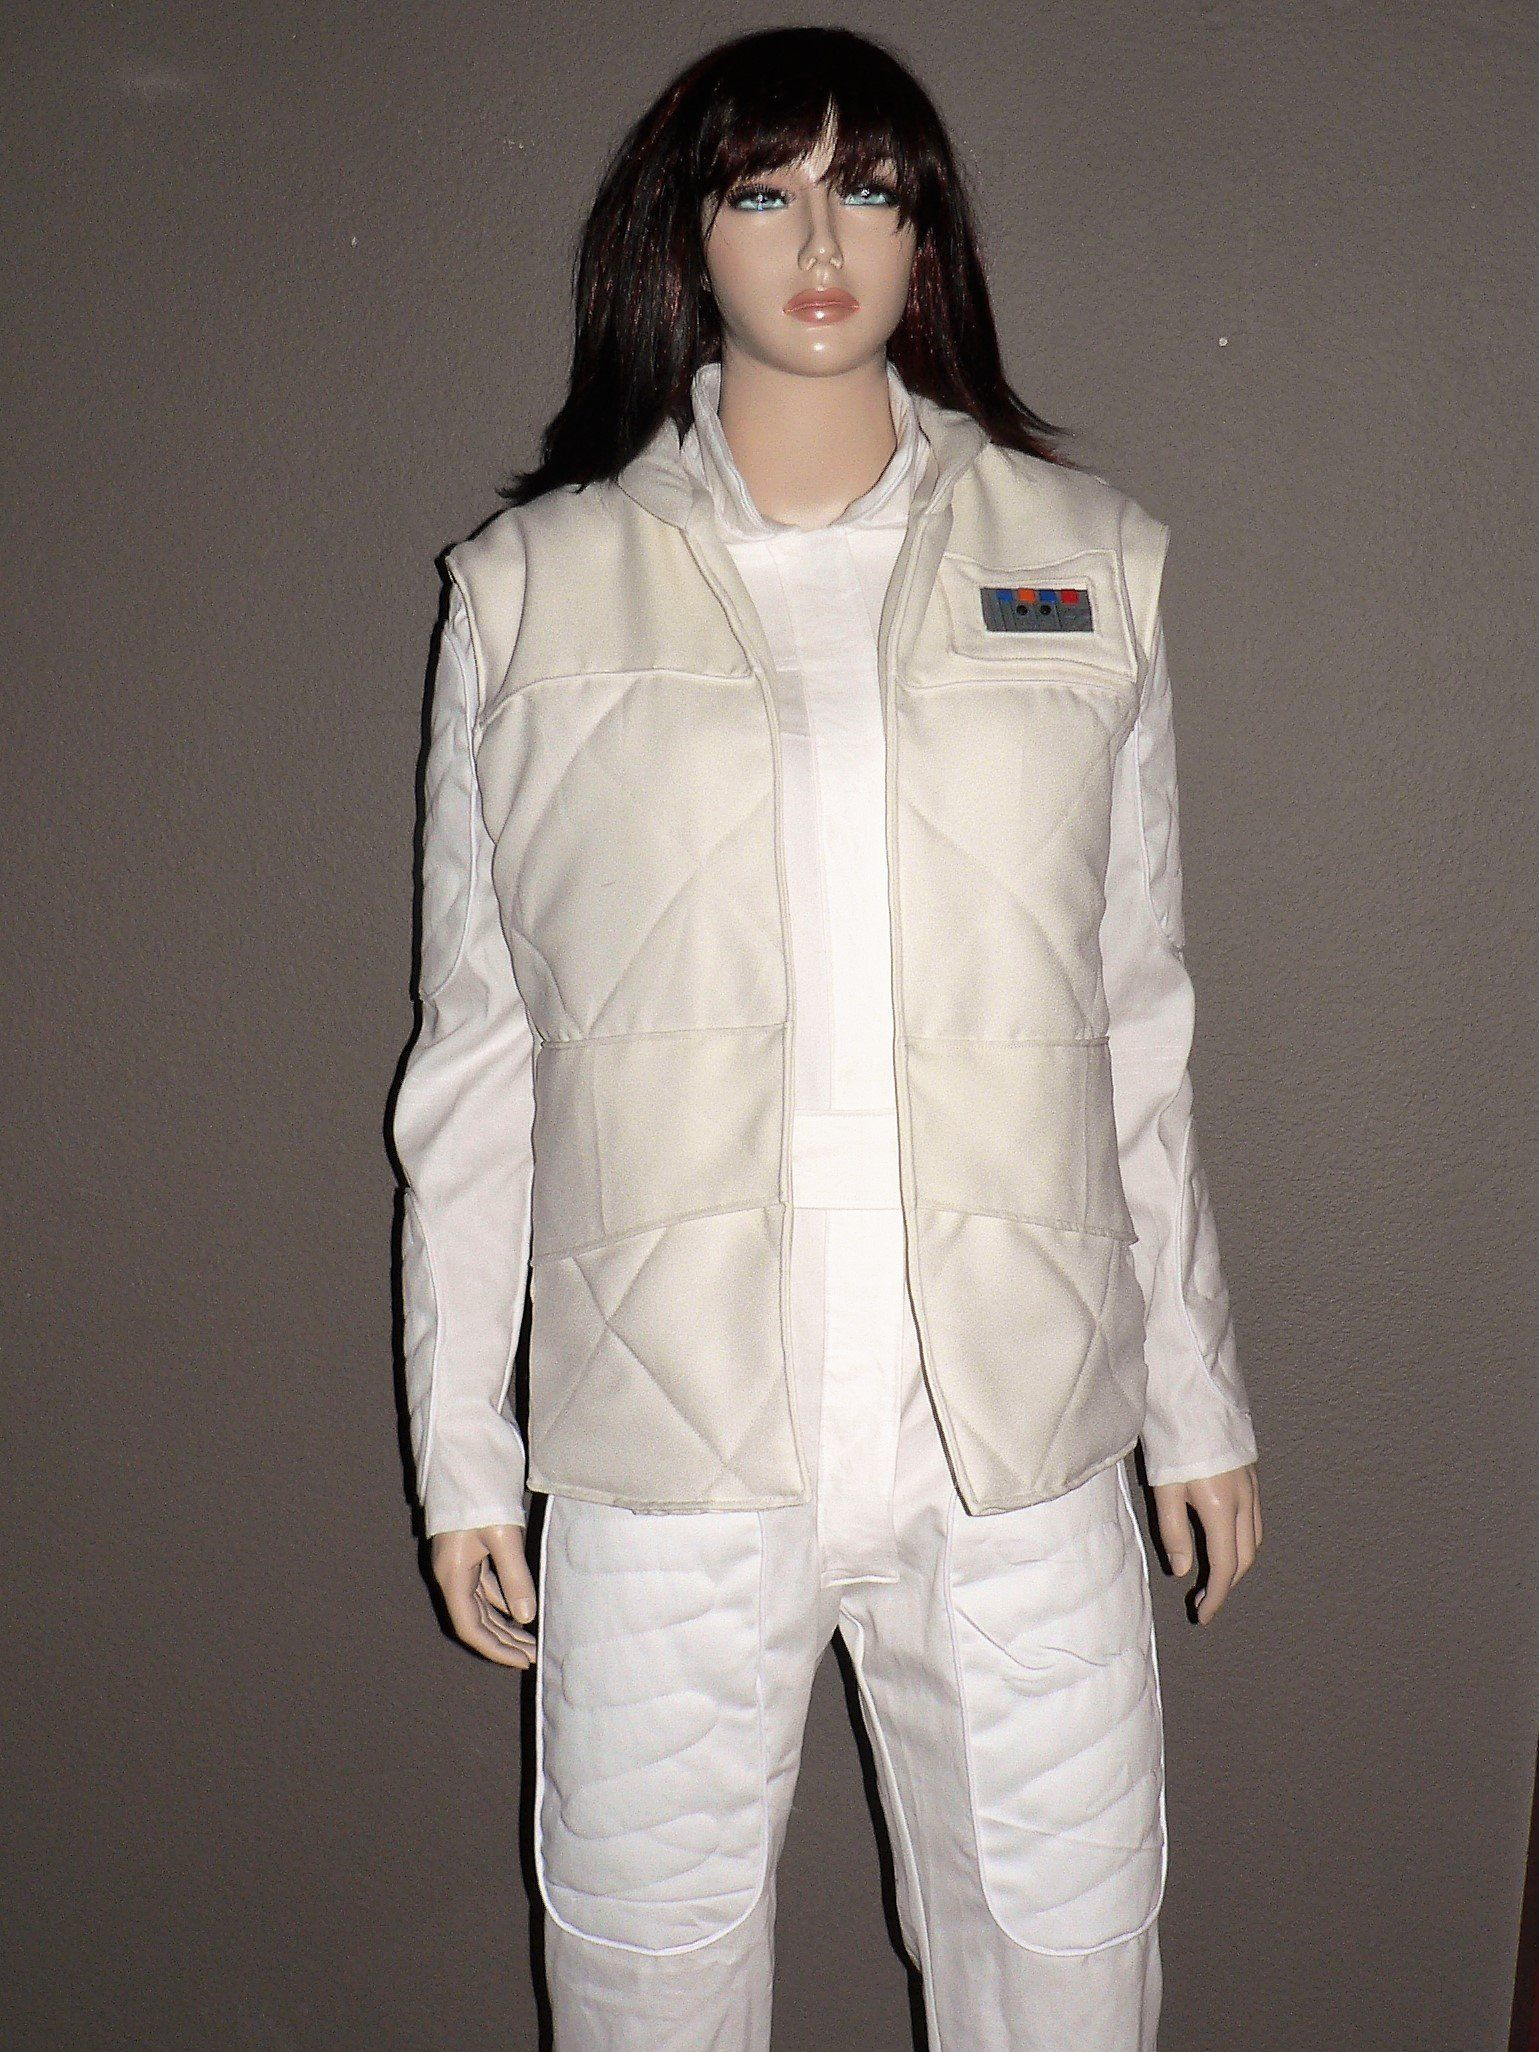 b1f325bf826b Princess Leia Hoth White Jumpsuit With Vest